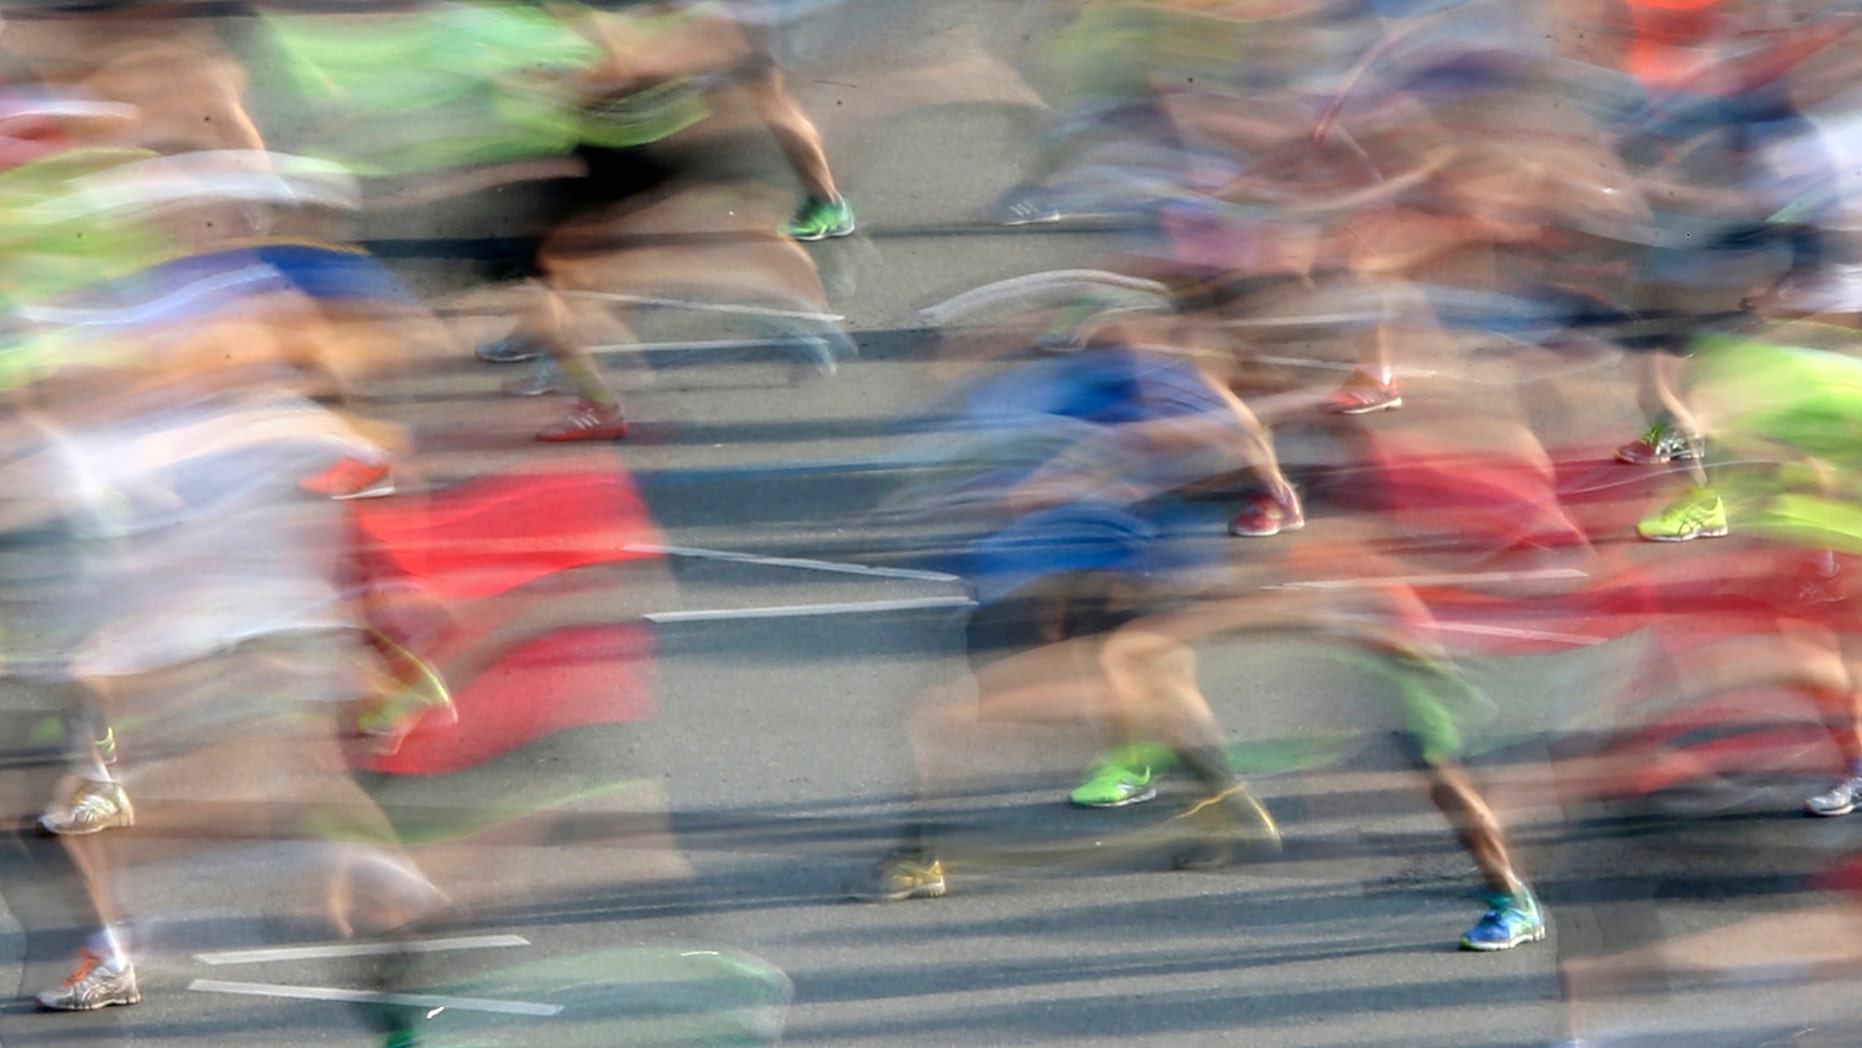 File photo - Runners compete at the Berlin marathon in Berlin, Germany, Sept. 25, 2016. (REUTERS/Fabrizio Bensch)